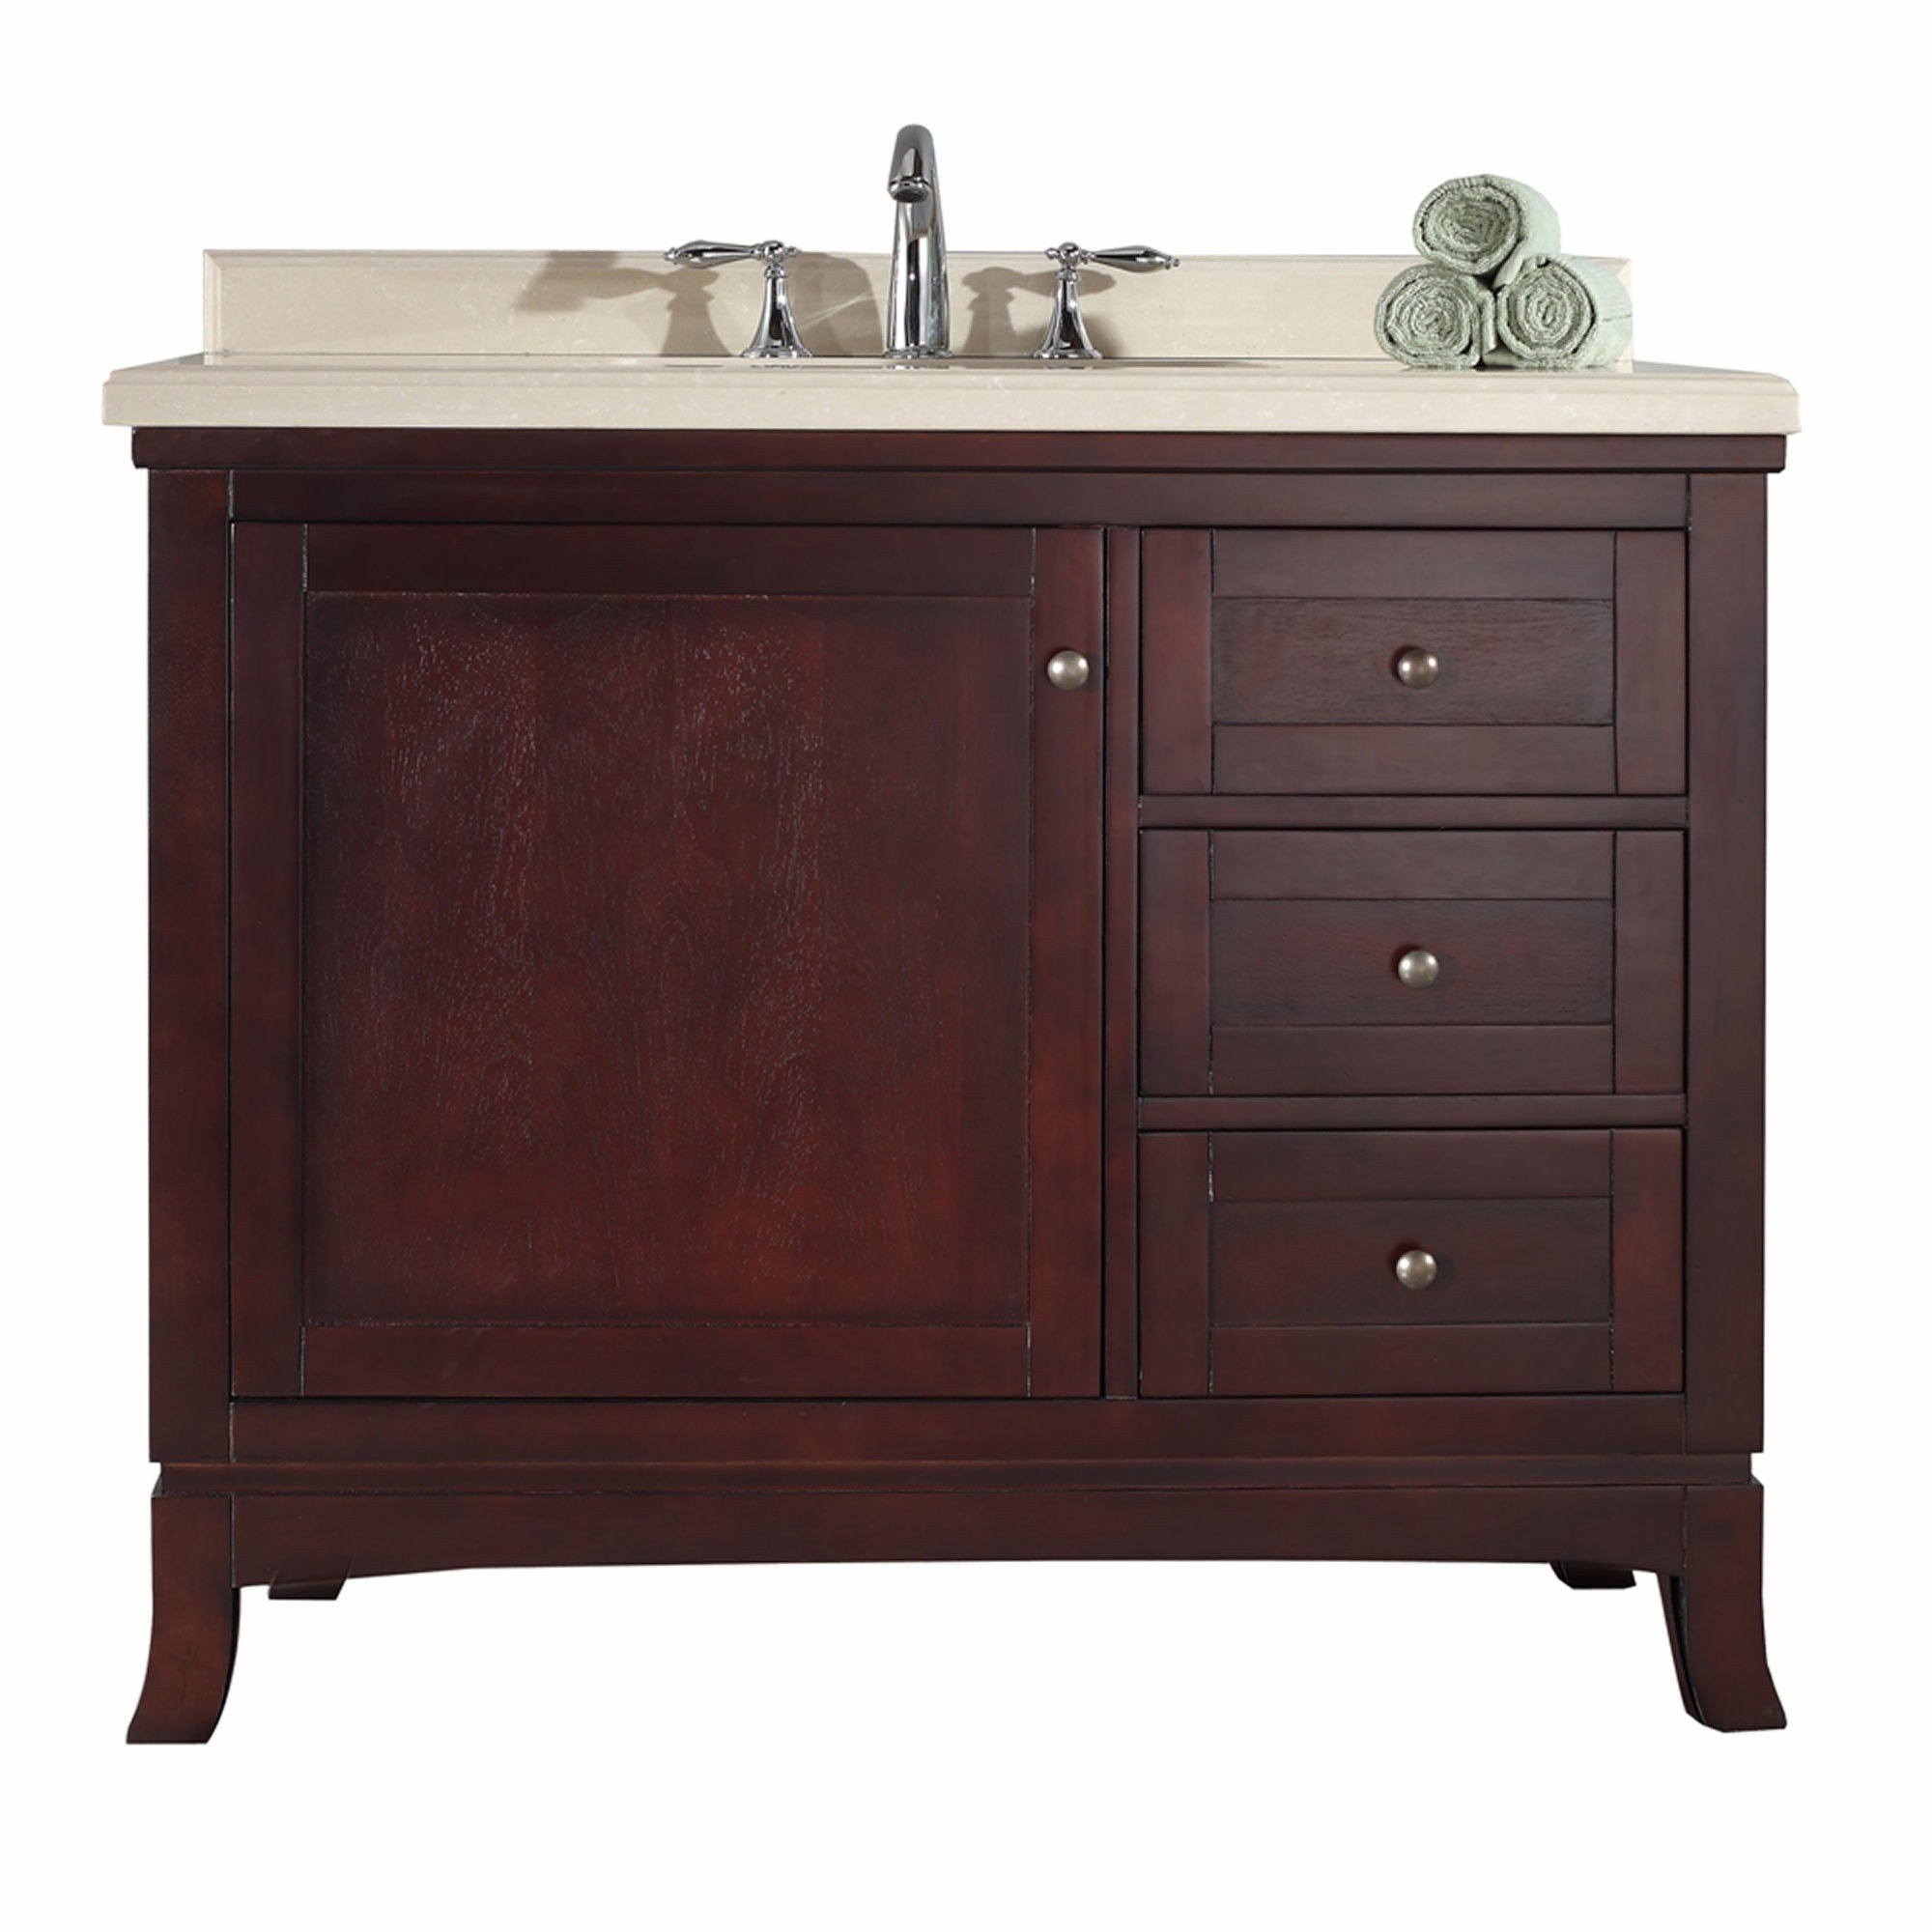 Ove Decor 15vva Vale42 D22af Valega 42 Inch Vanity In